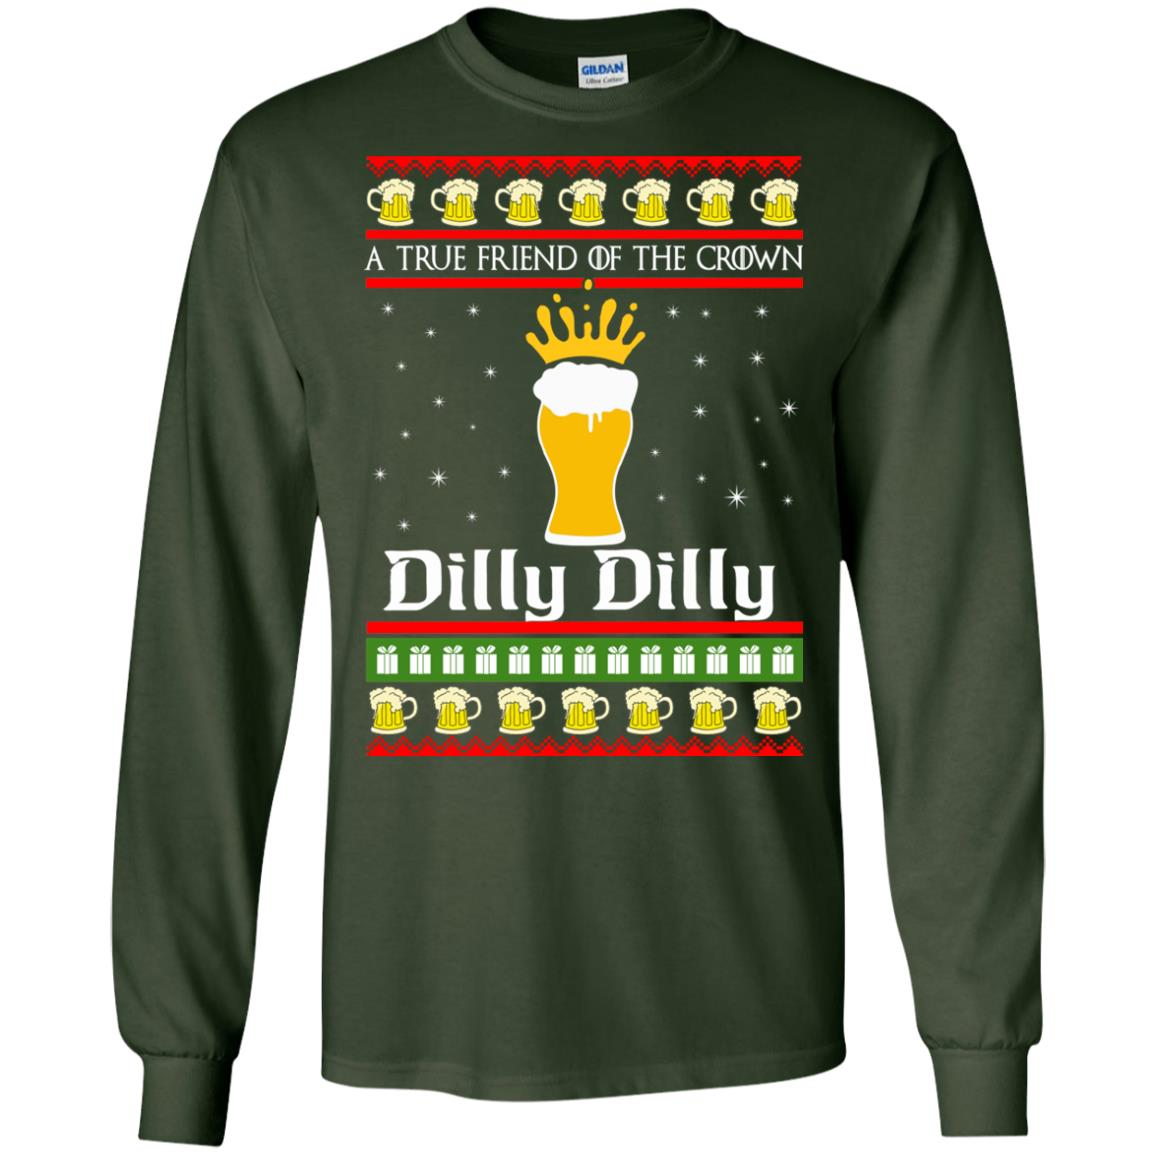 image 6319 - A True Friend Of The Crown Dilly Dilly Christmas Sweater, Hoodie